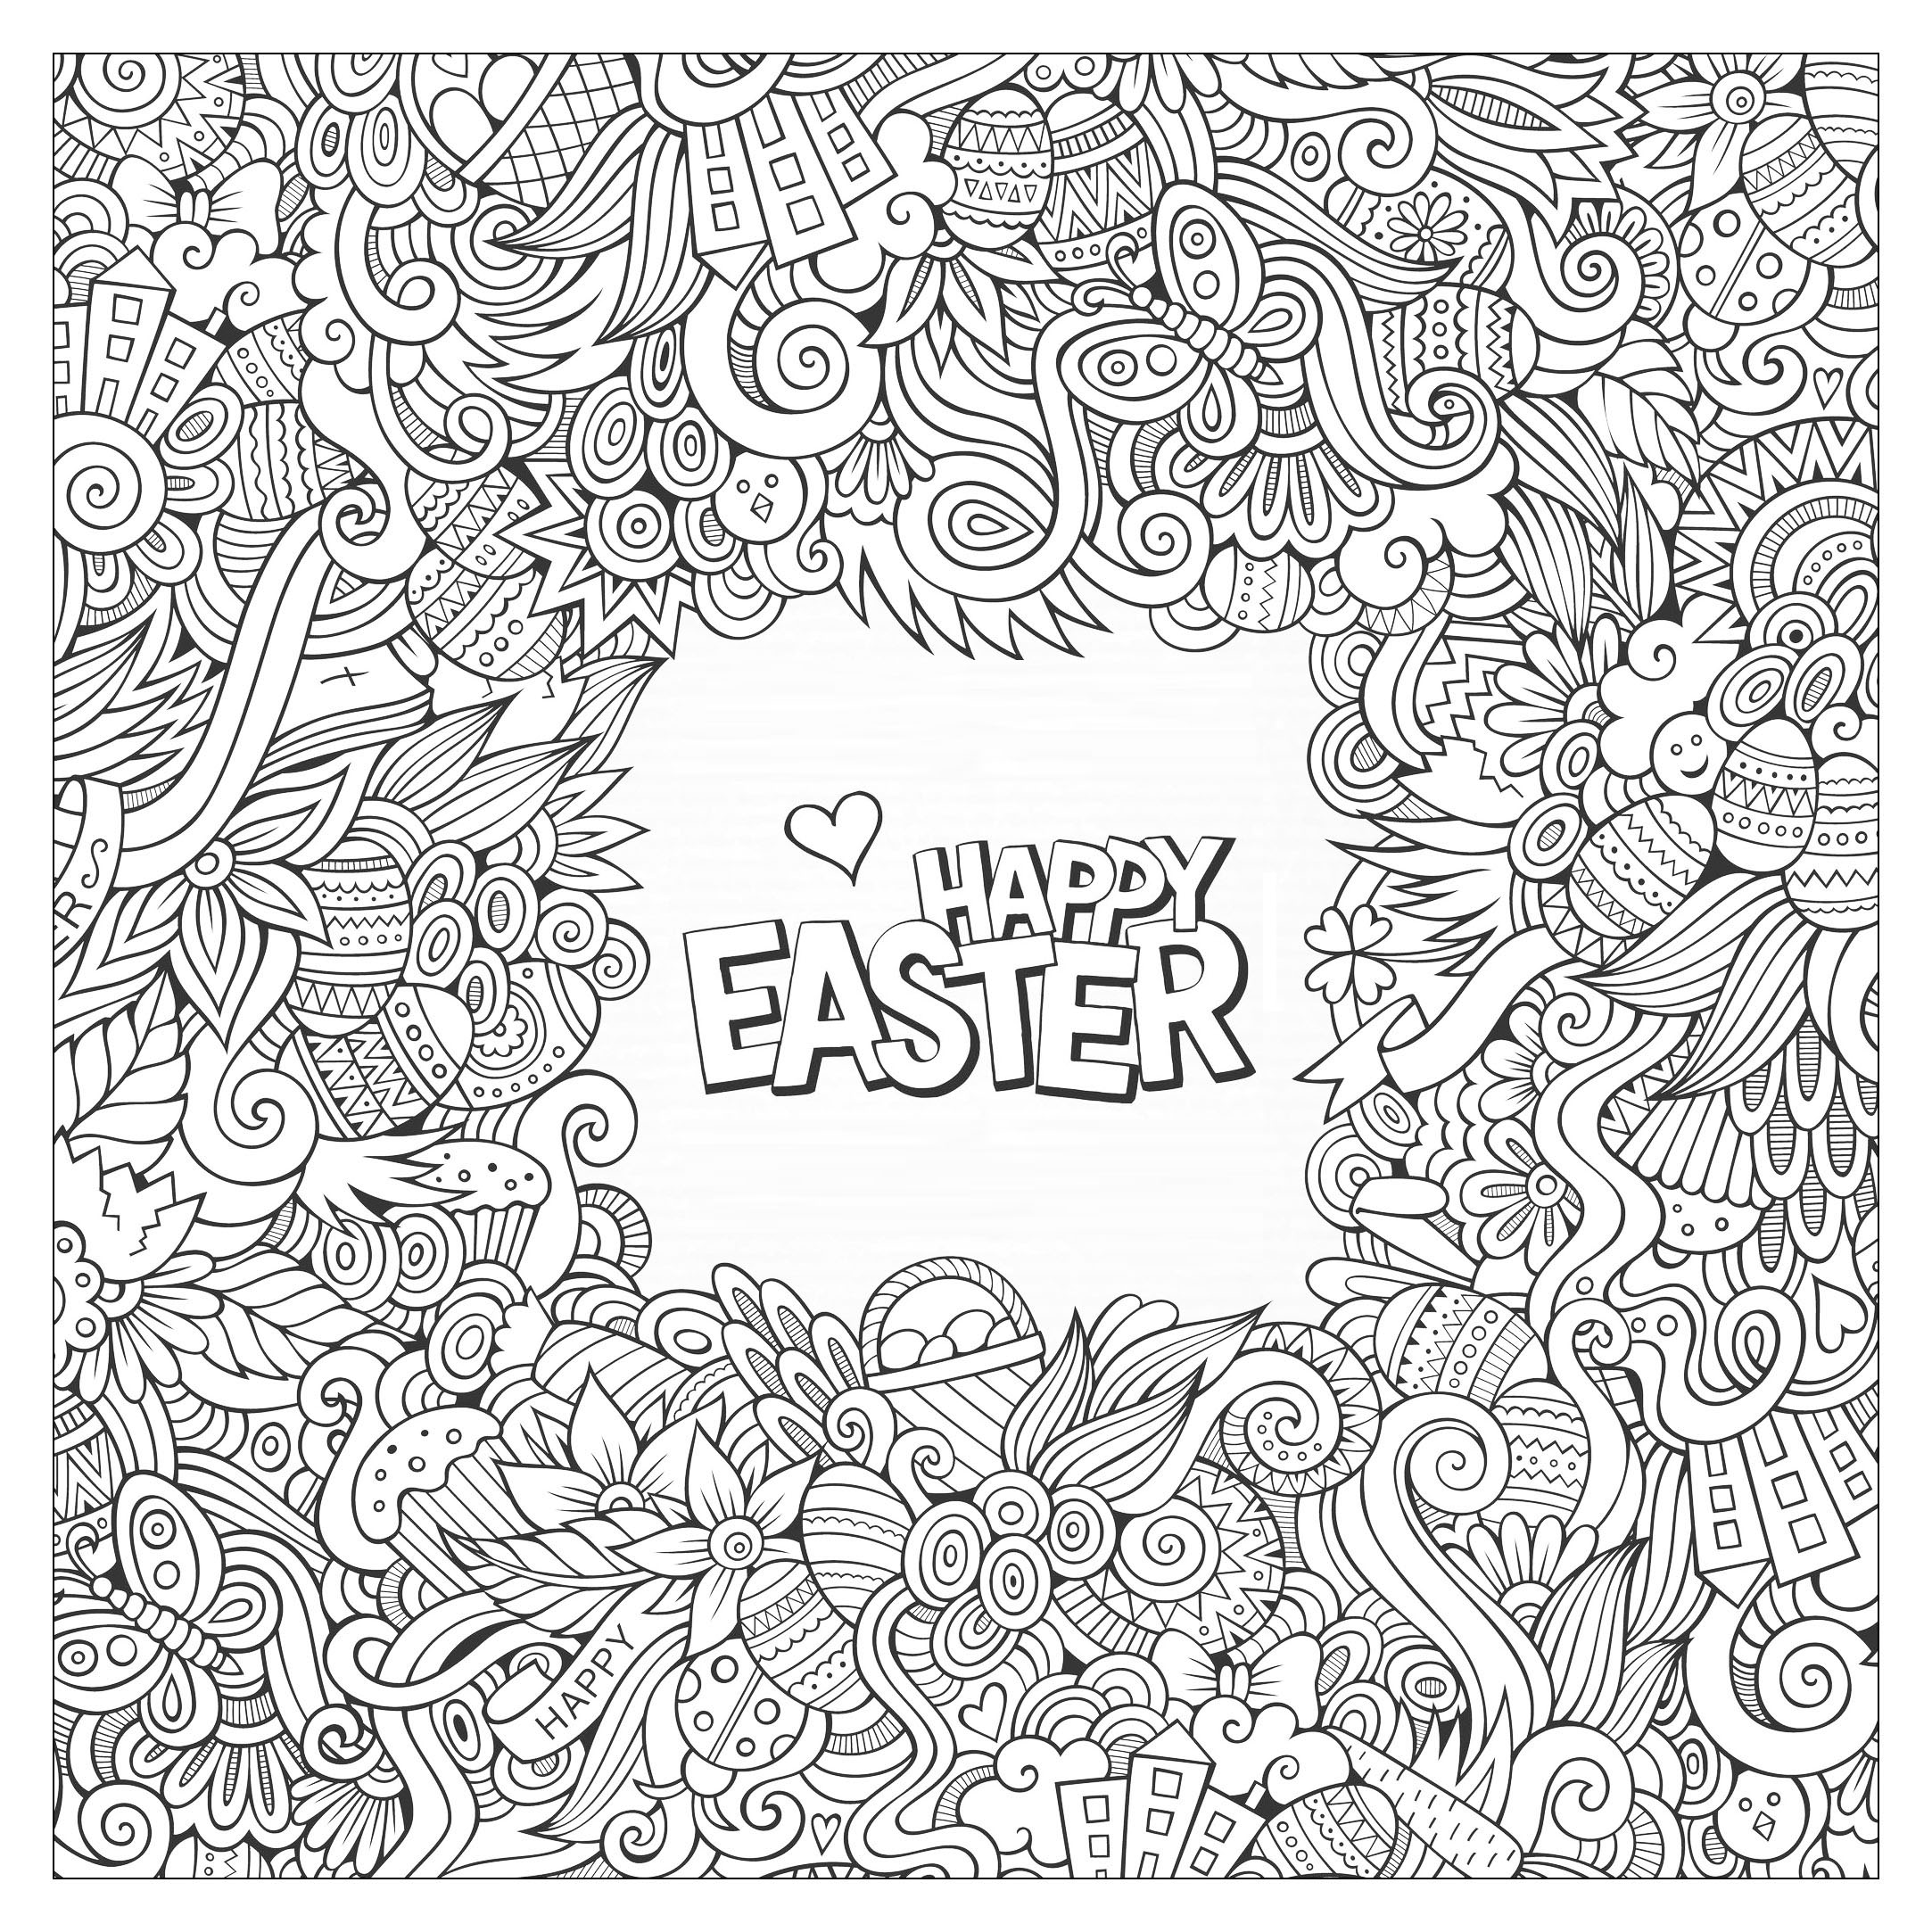 Mandala coloring pages easter - Coloring Adult Doodle Easter By Olga_kostenko Free To Print